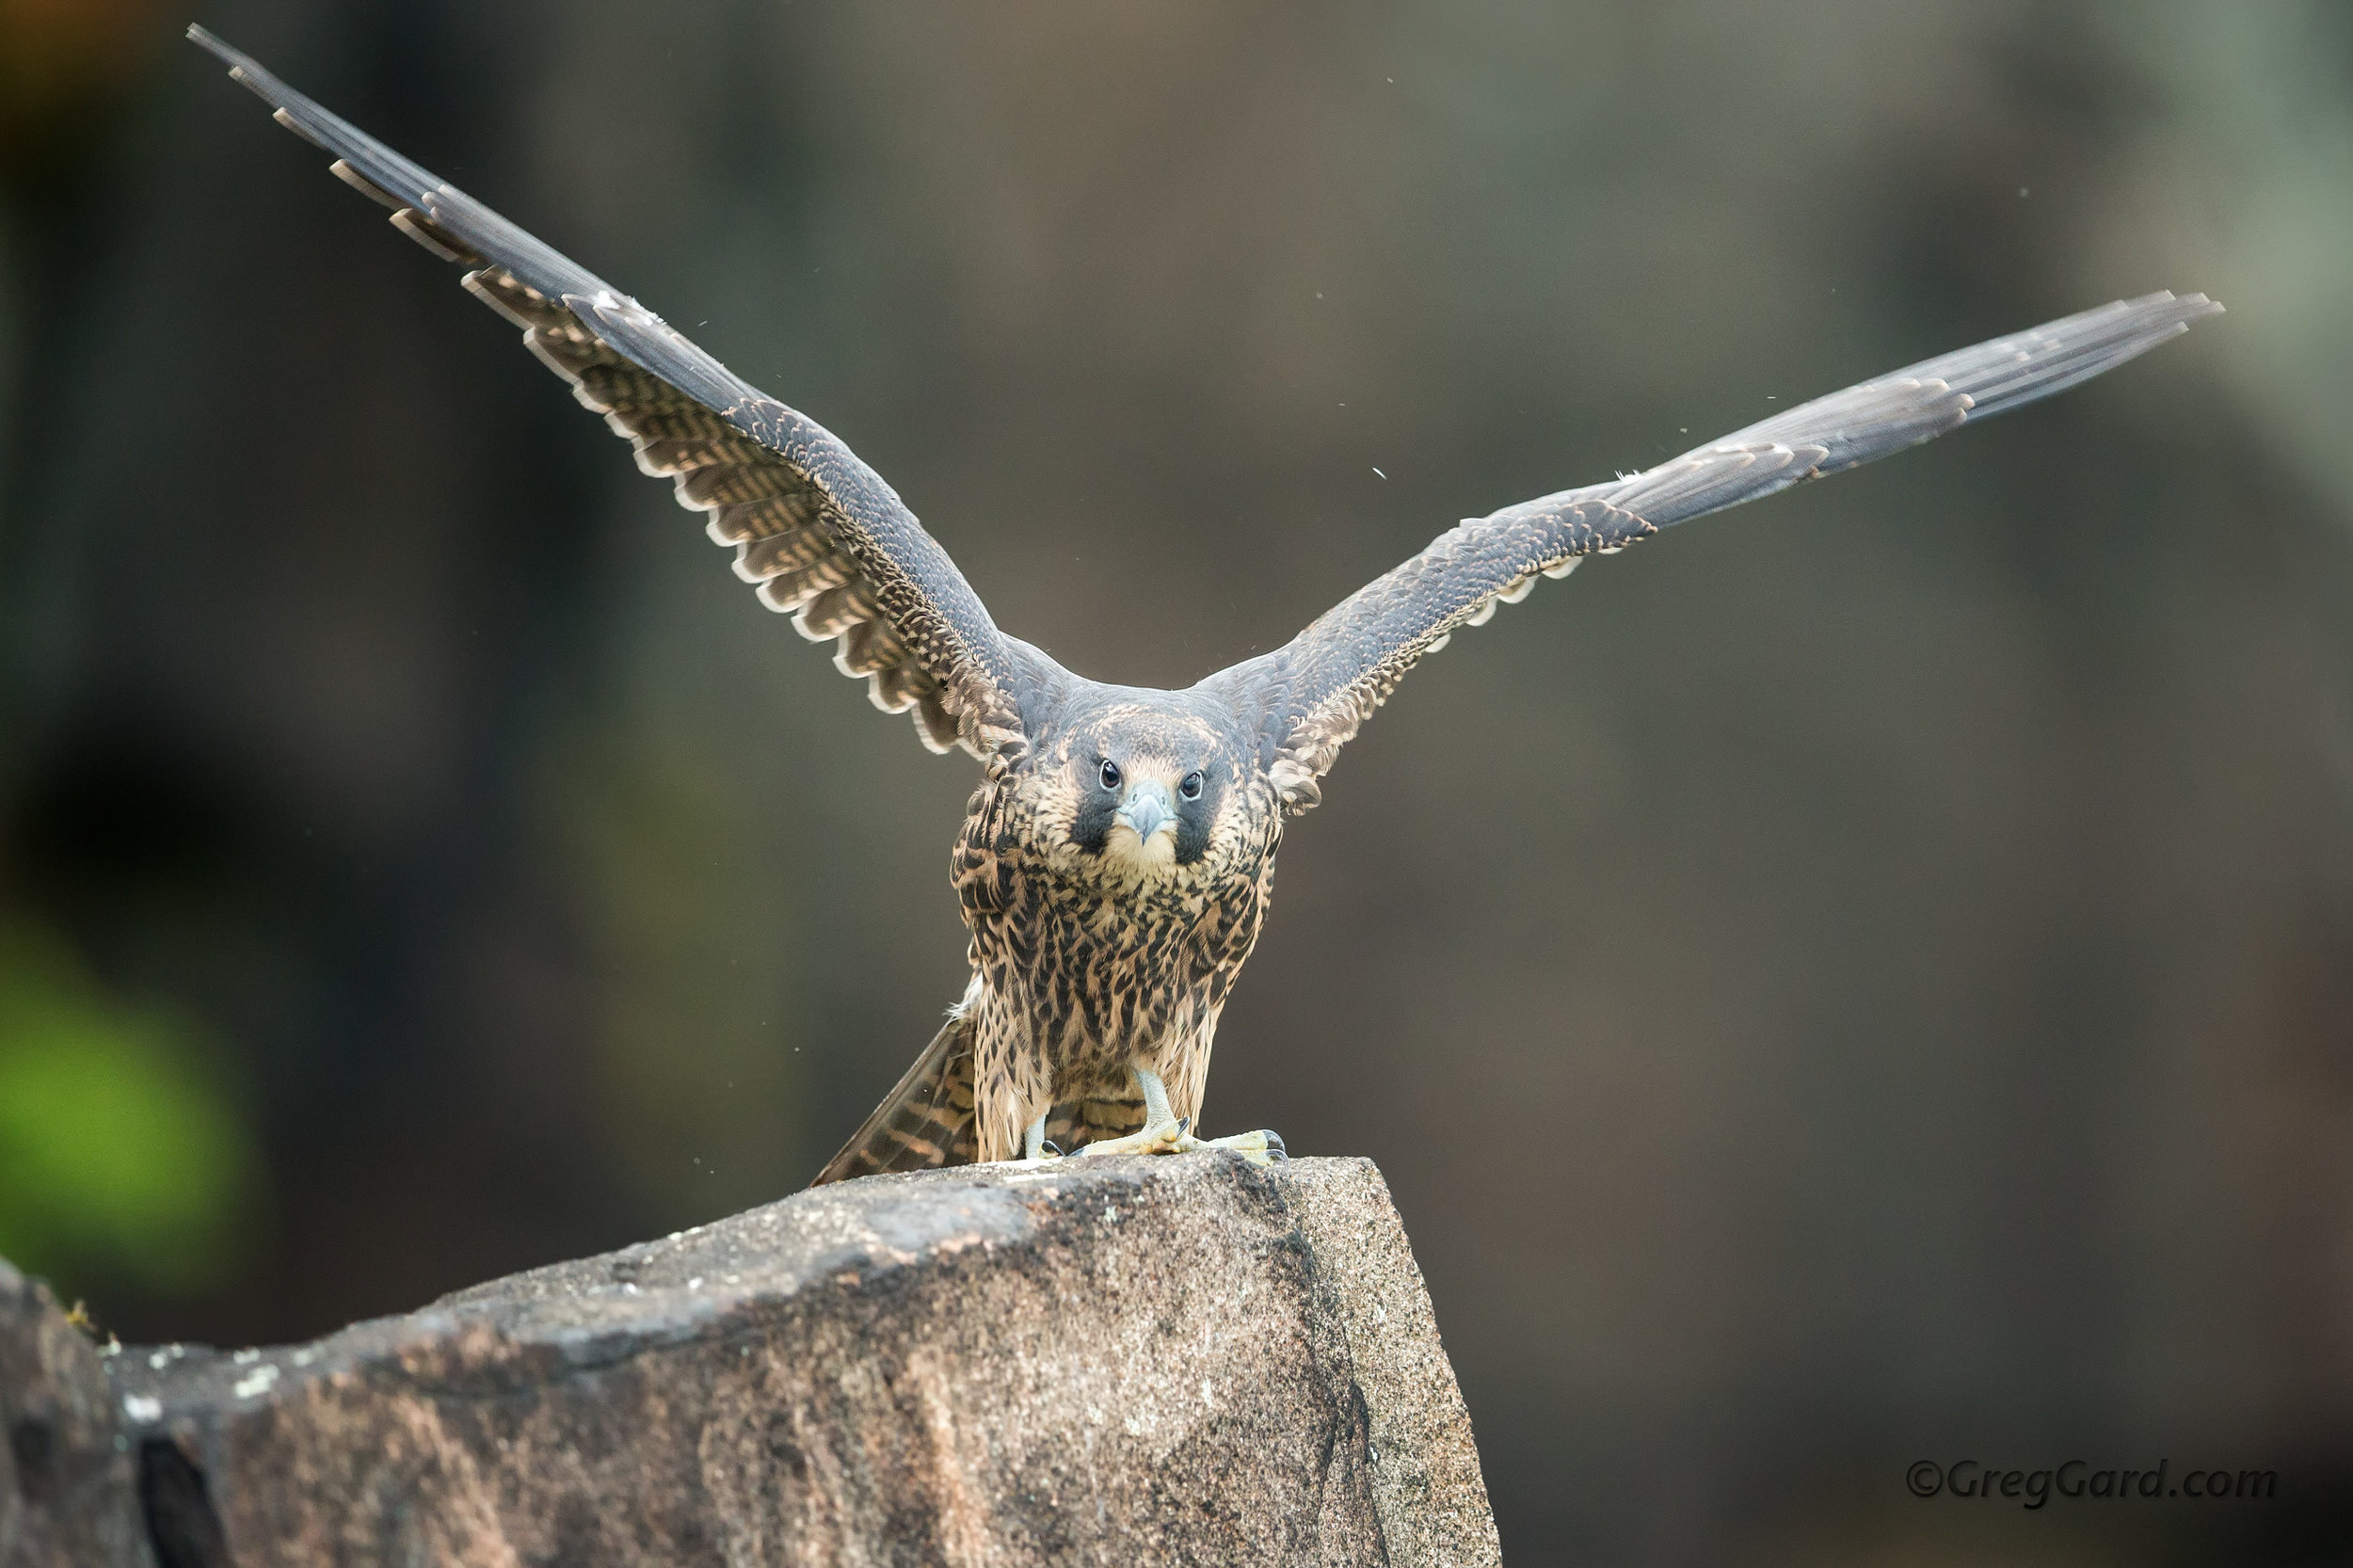 Fledgling Peregrine Falcon flapping its wings